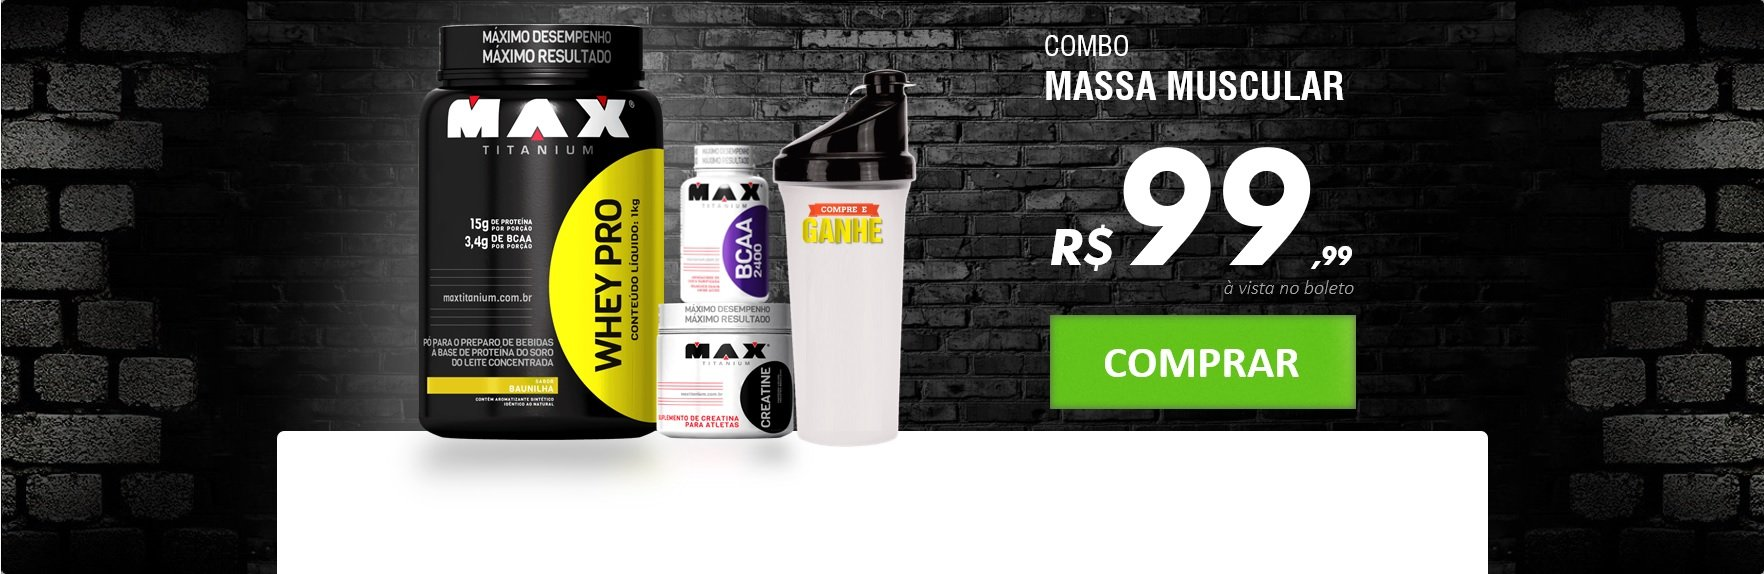 combo-kit-massa-muscular-max-titanium